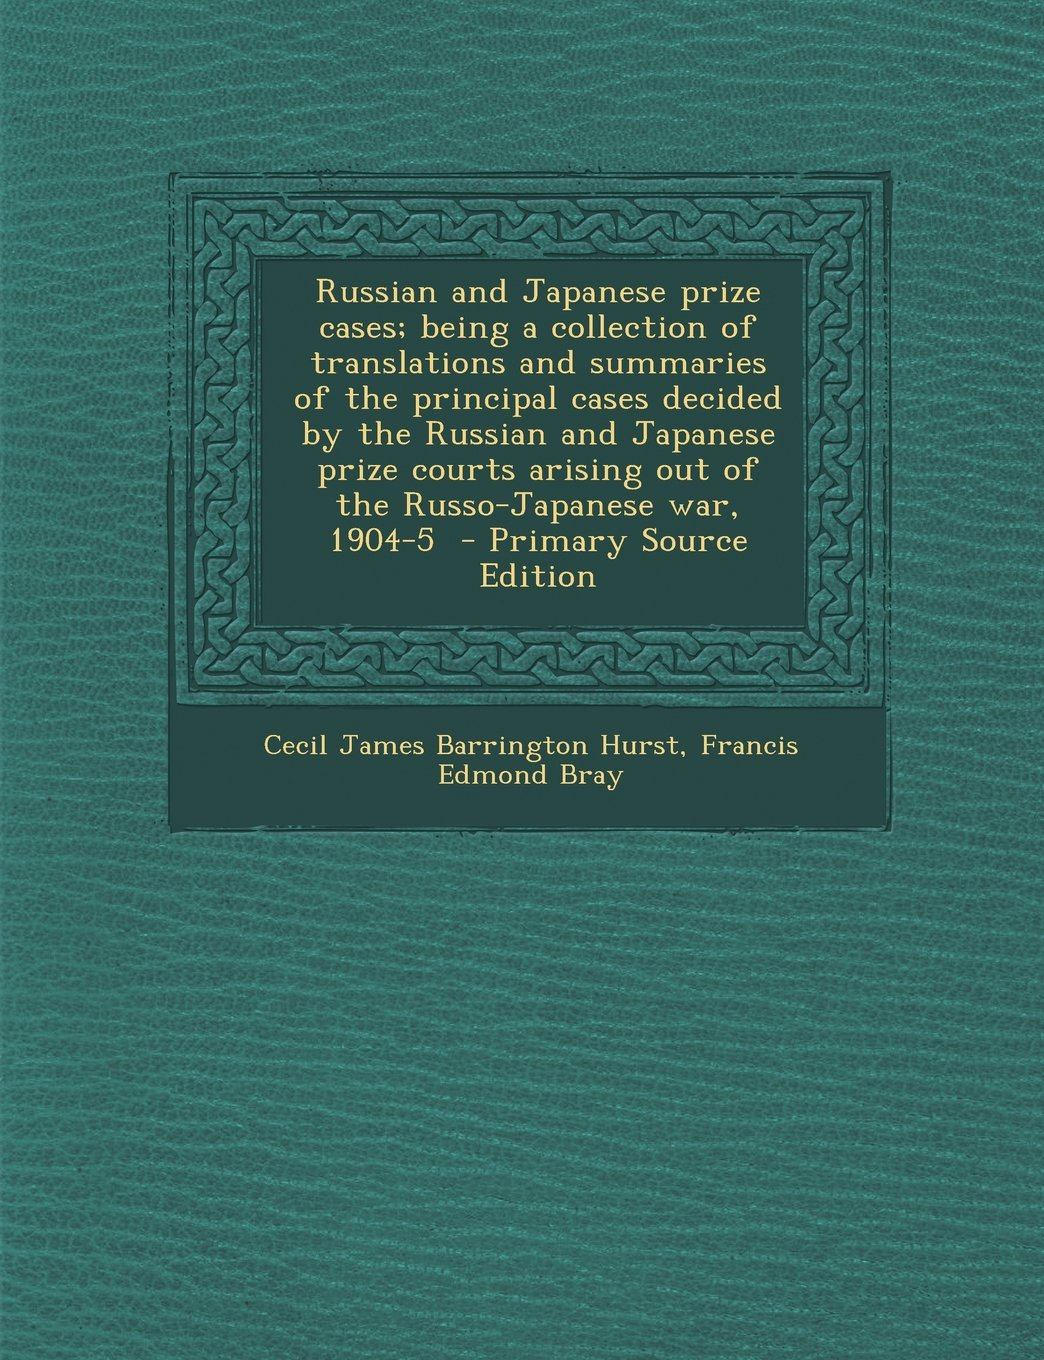 Russian and Japanese prize cases; being a collection of translations and summaries of the principal cases decided by the Russian and Japanese prize ... war, 1904-5  - Primary Source Edition PDF Text fb2 book